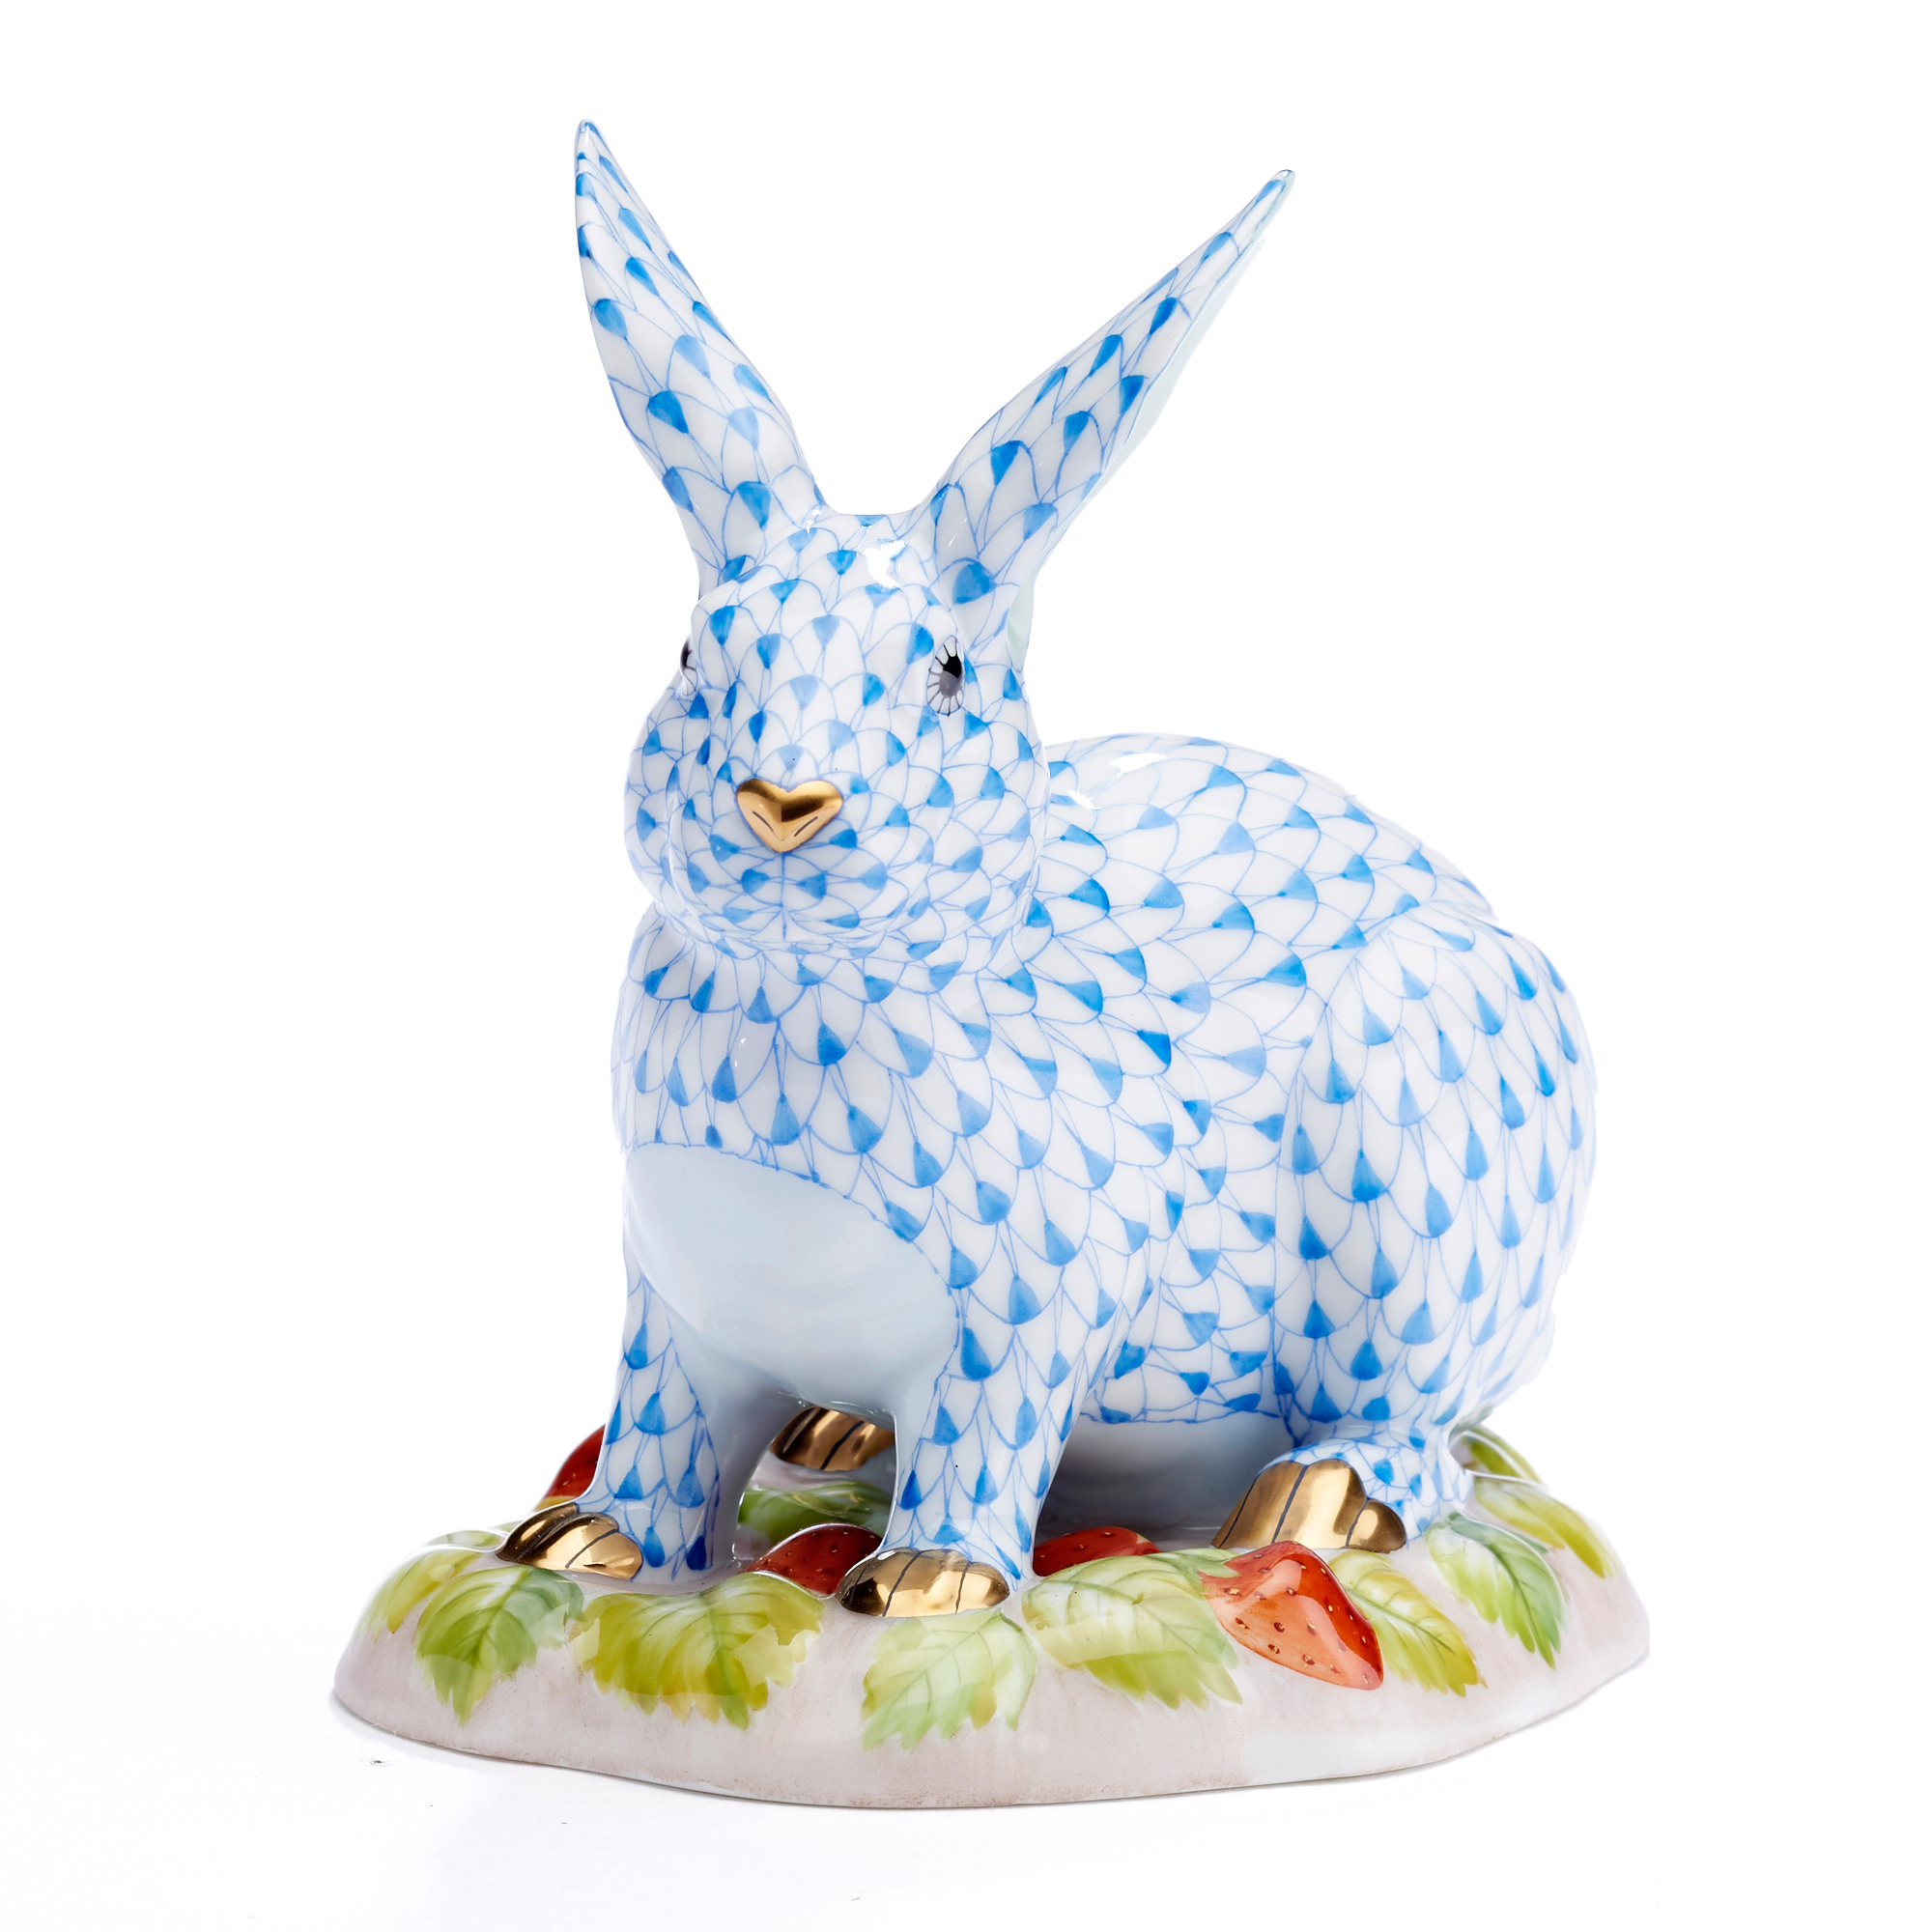 Herend Easter Bunnies Berry Bunny